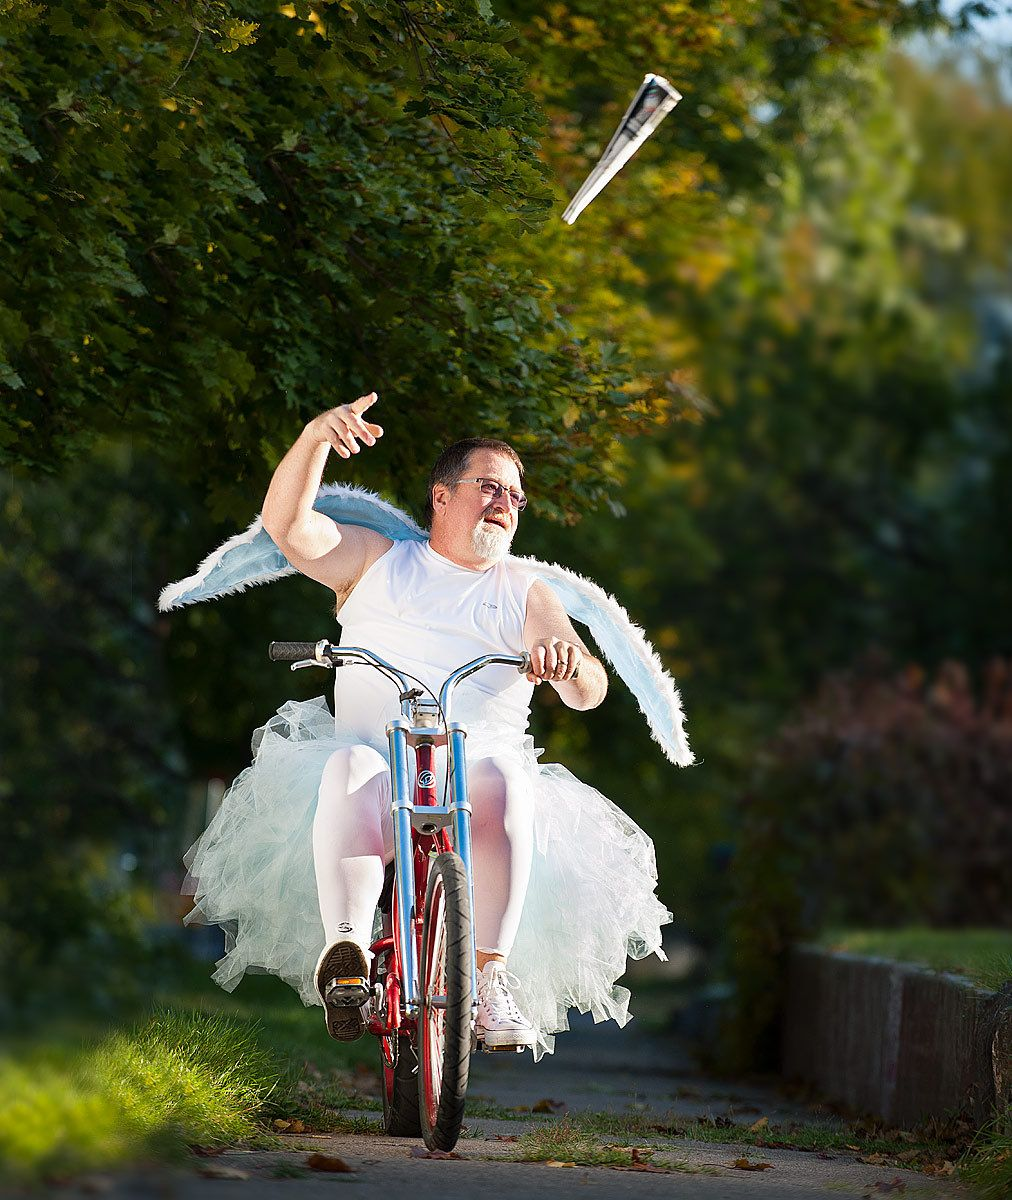 The Tooth Fairy's New Paper Route